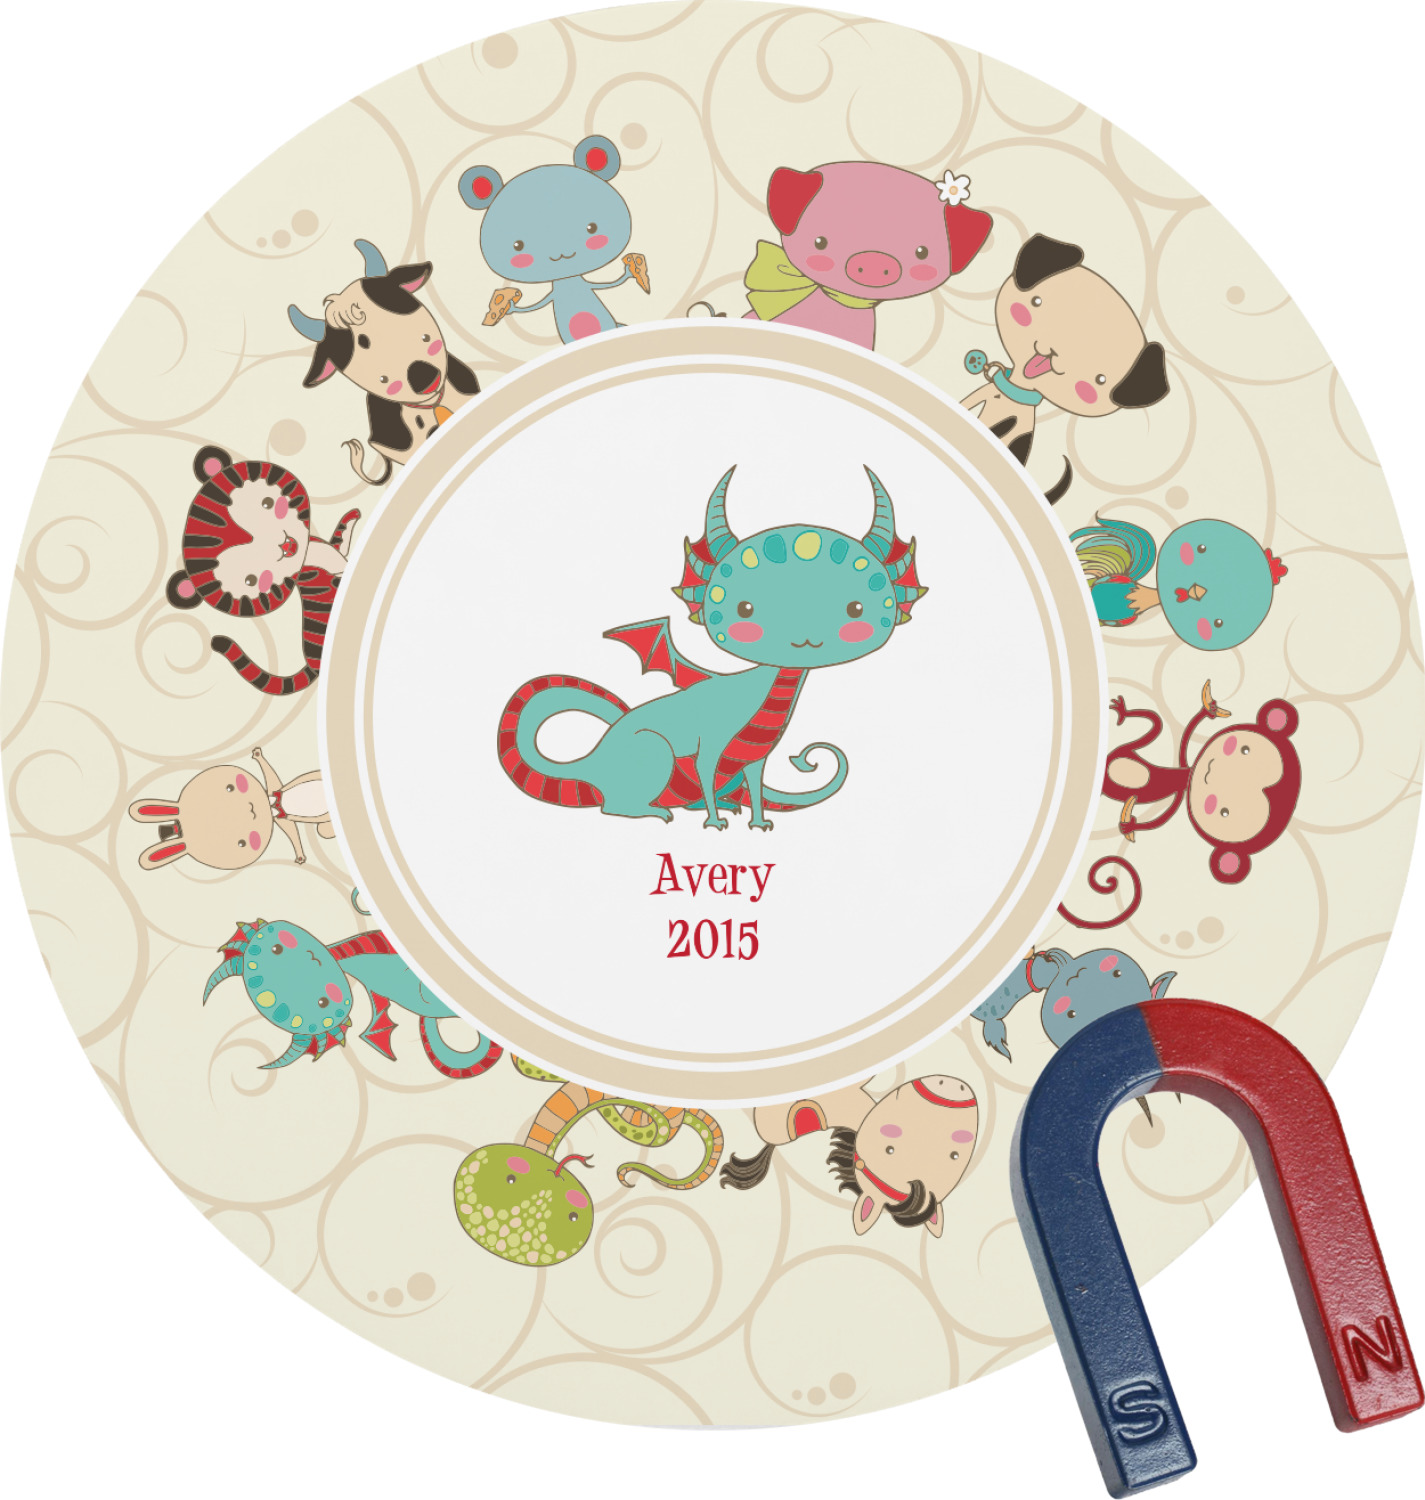 3ee1ab95e Chinese Zodiac Round Magnet (Personalized) - YouCustomizeIt